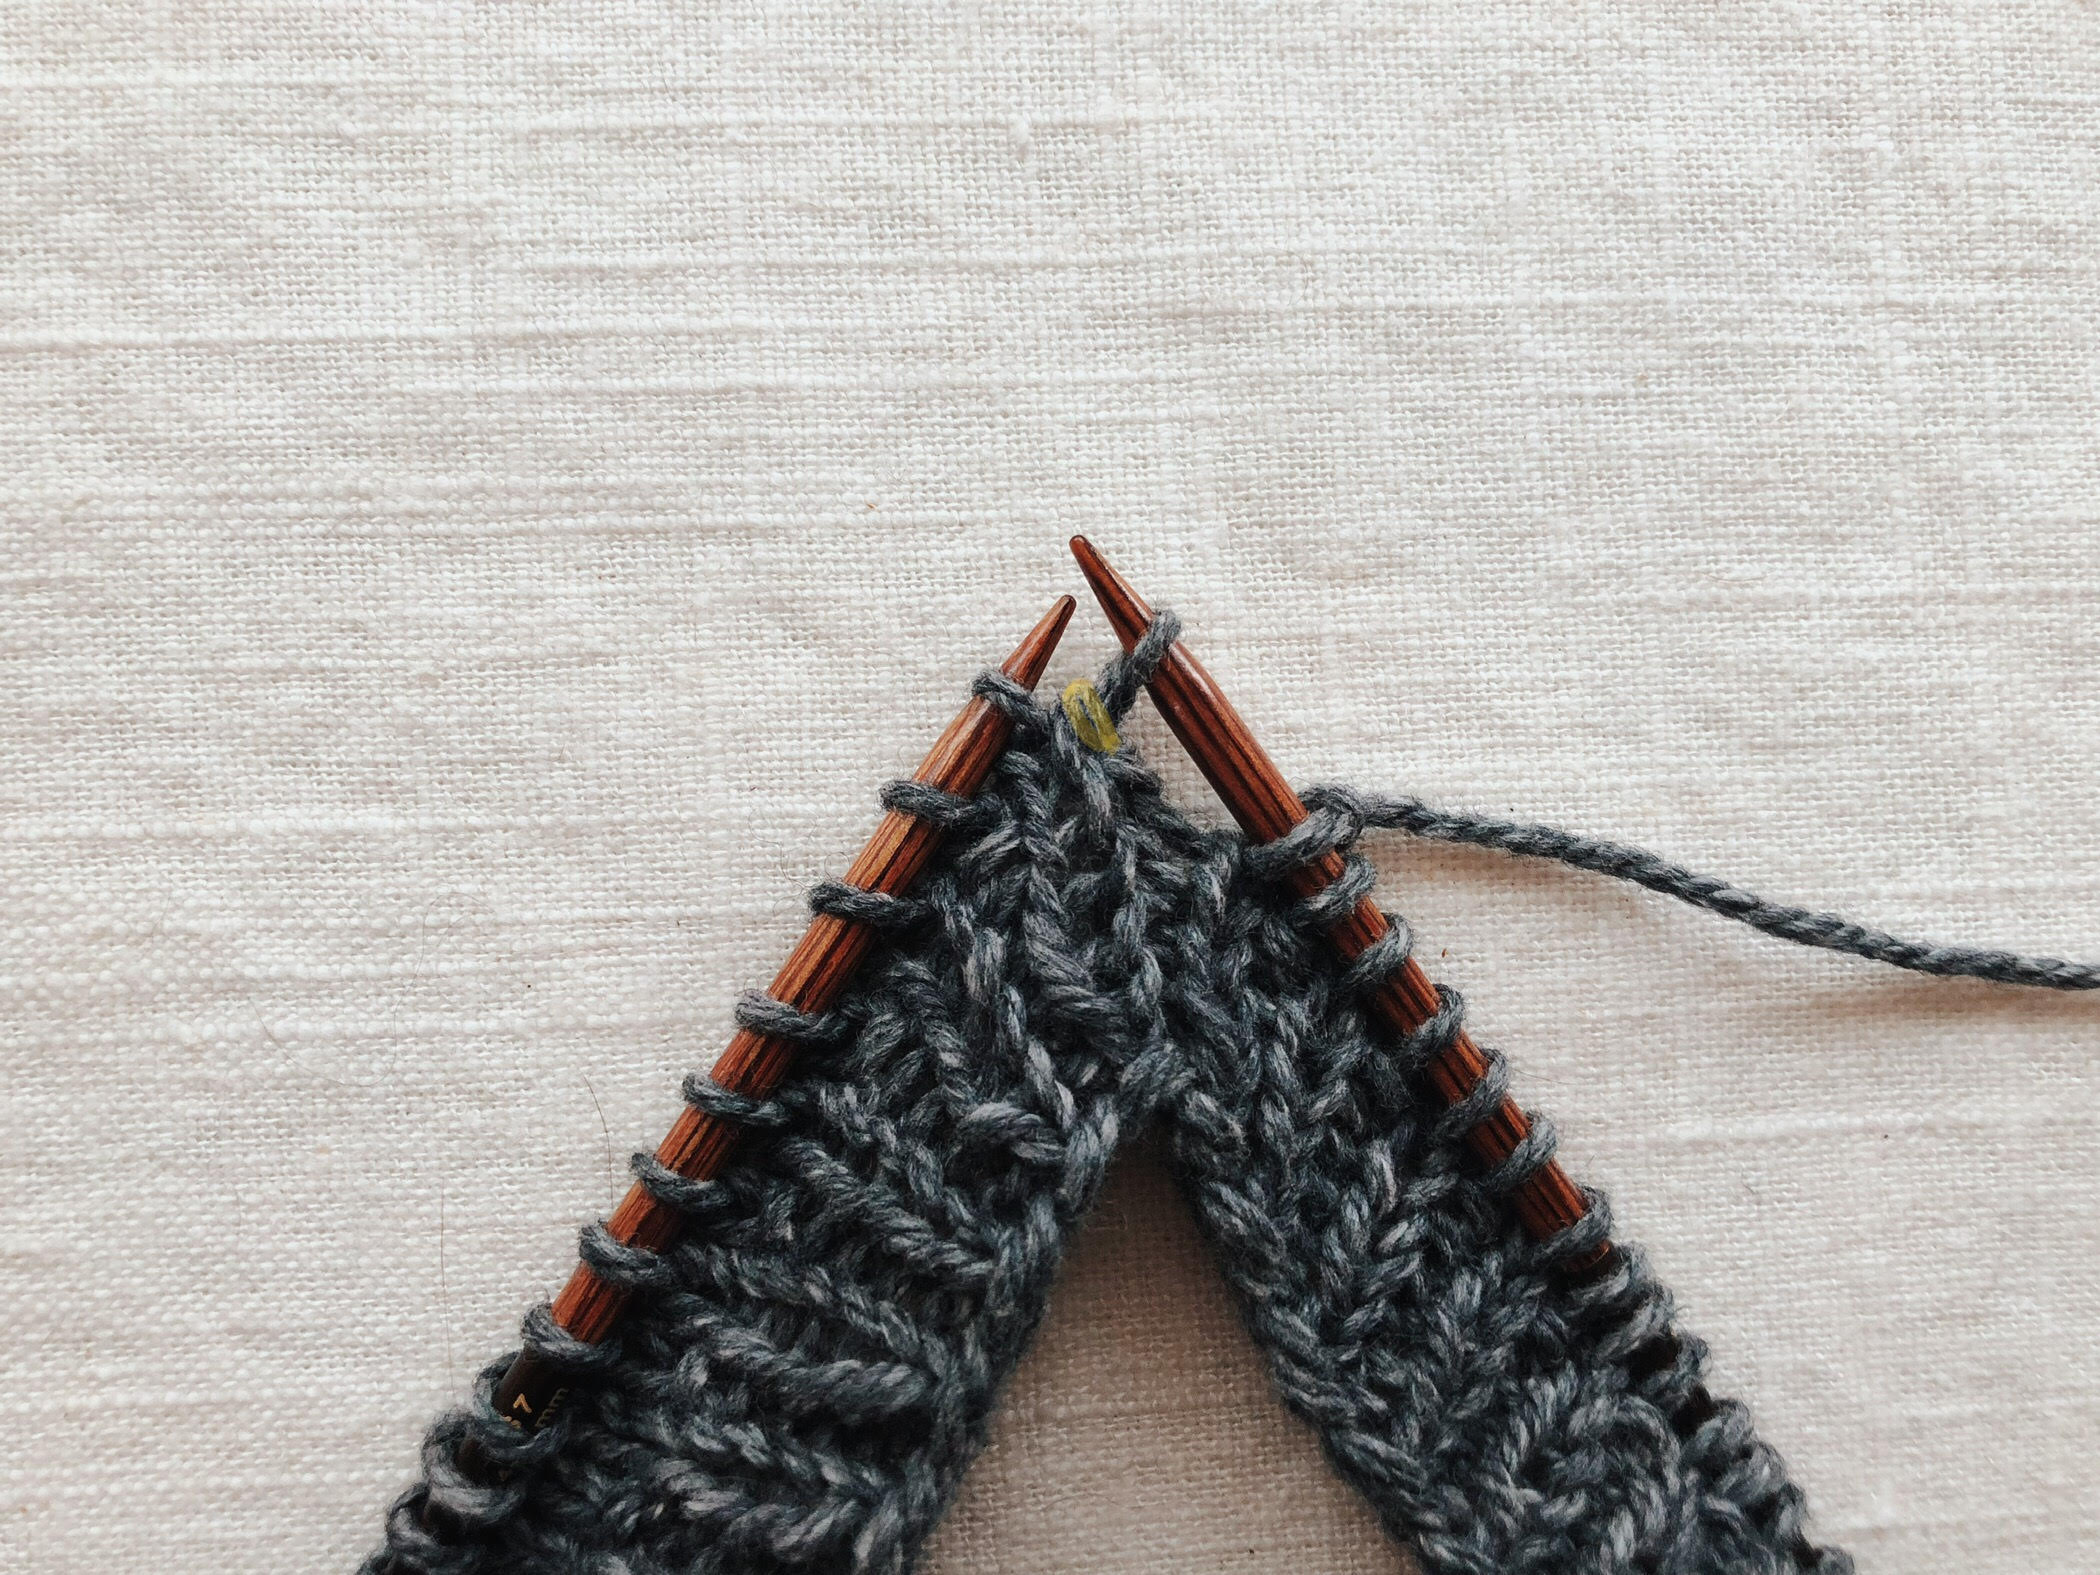 Transfer the stitch from the left needle to the right needle, exposing the slipped stitch (highlighted)